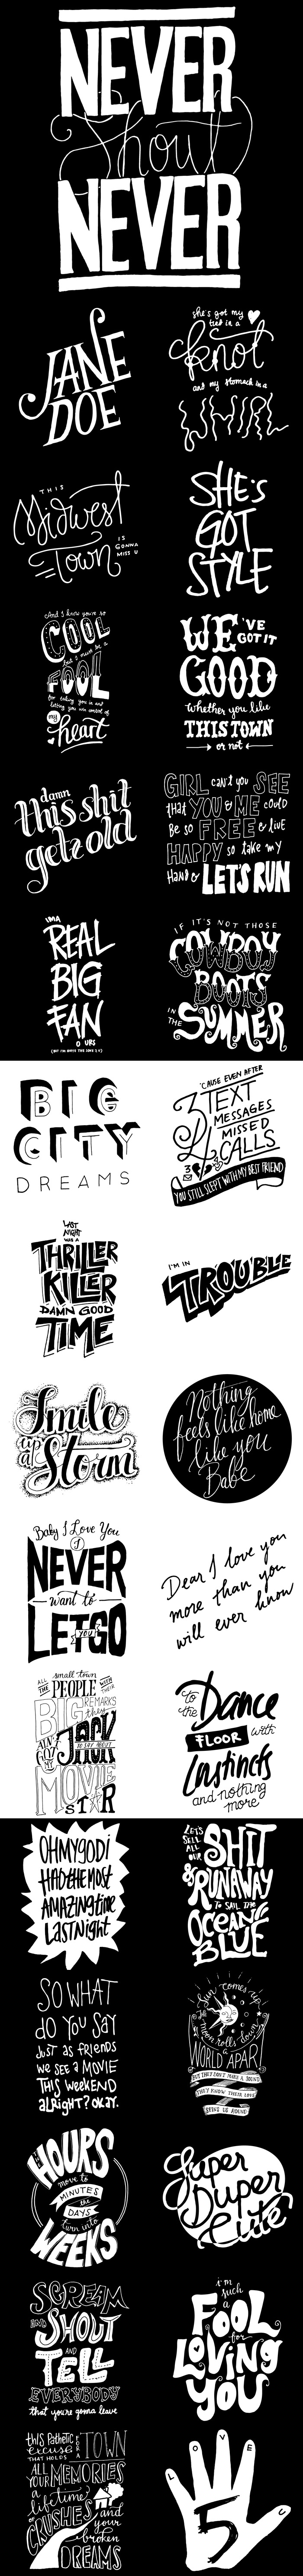 Our Nevershoutnever Inspired Lettering Pieces Available As T